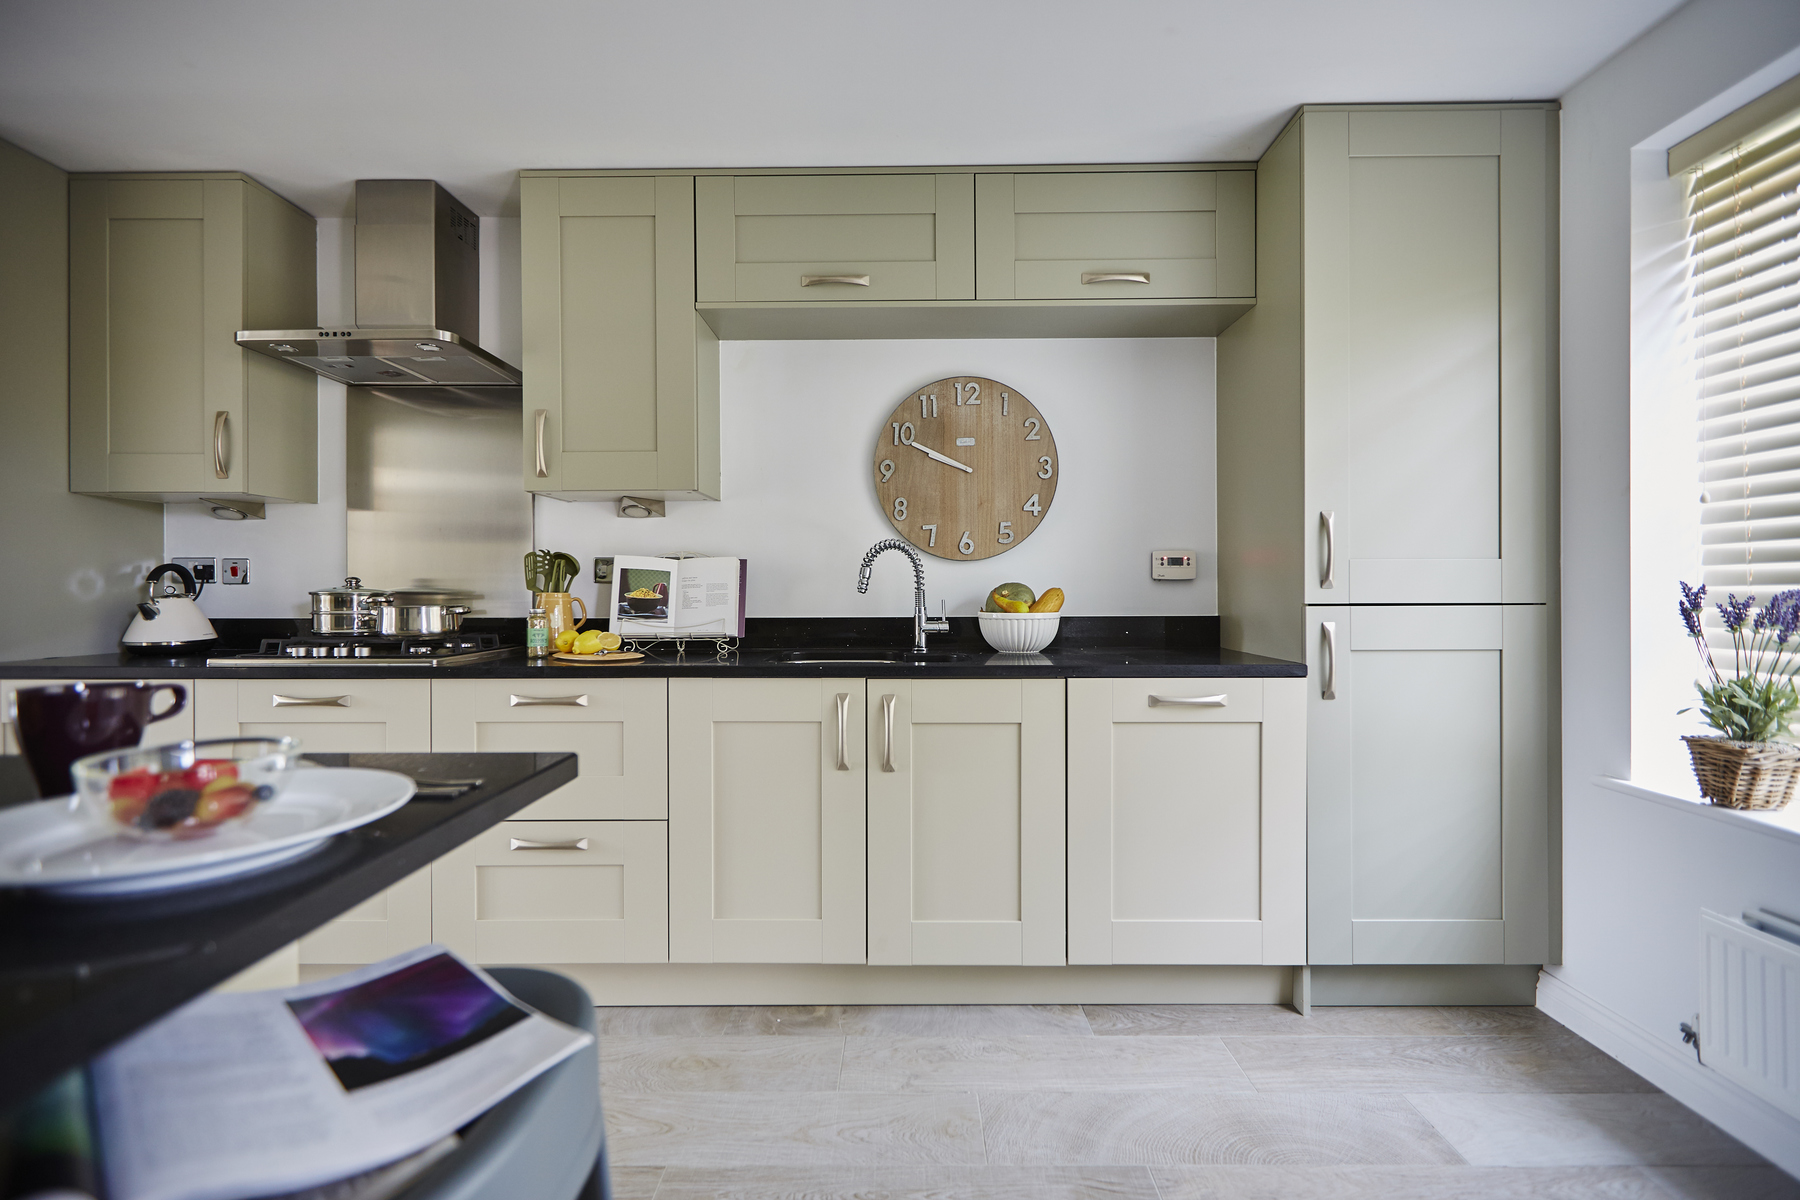 tw_westmids_nursery_meadow_barford_pa49_thornford_kitchen_cameo_2